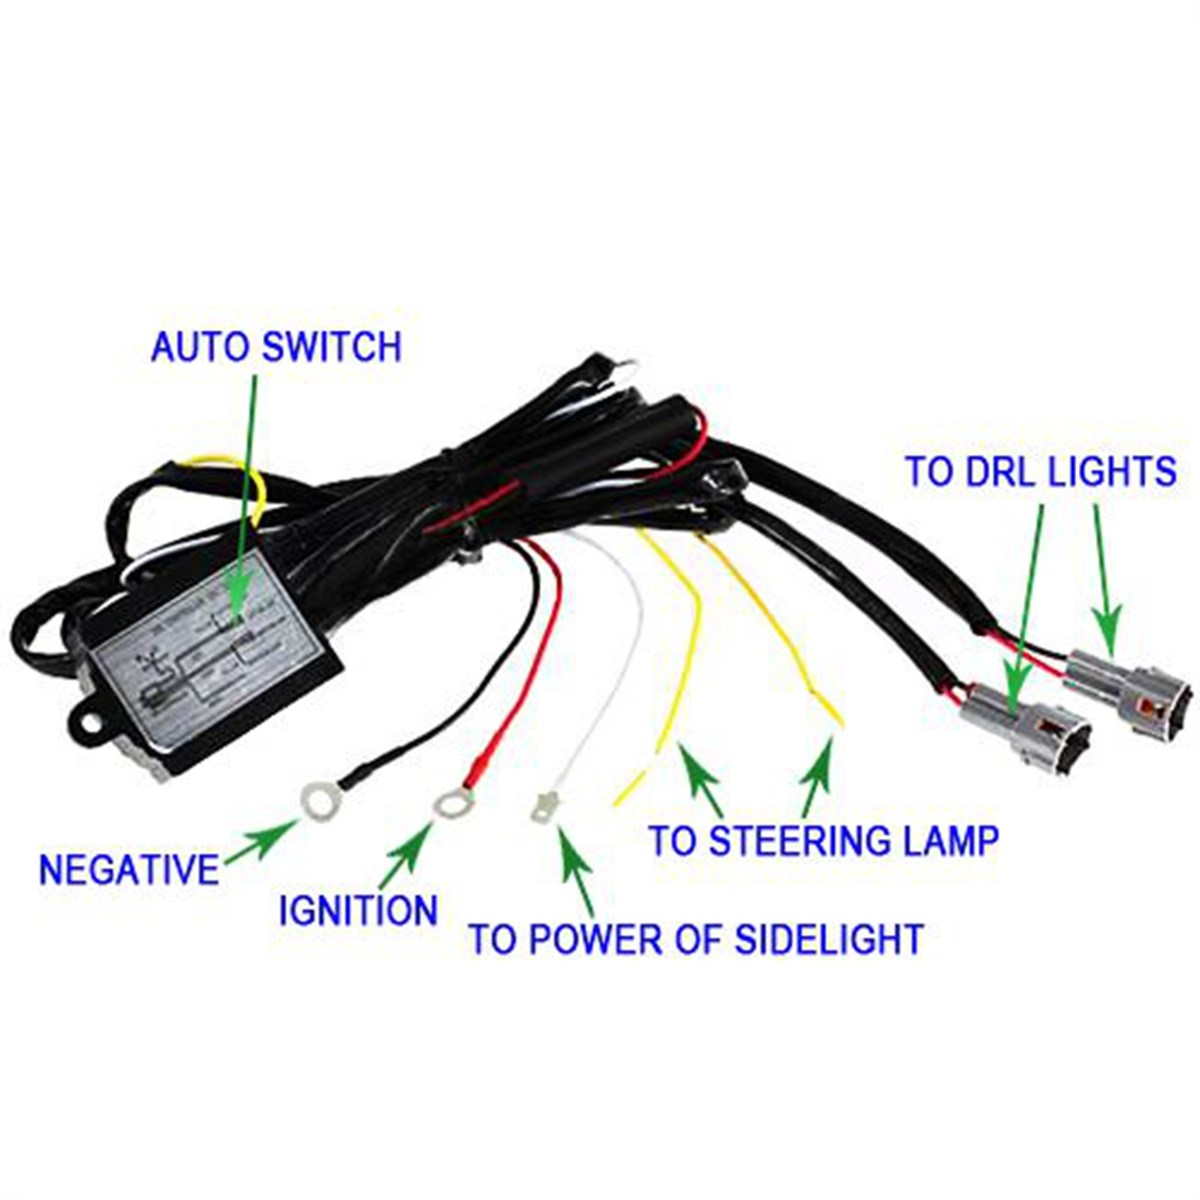 Wiring Diagram For Led Daytime Running Lights Library Ignition Warning Light Drl Relay Harness Automatic On Off Control Switch 12v